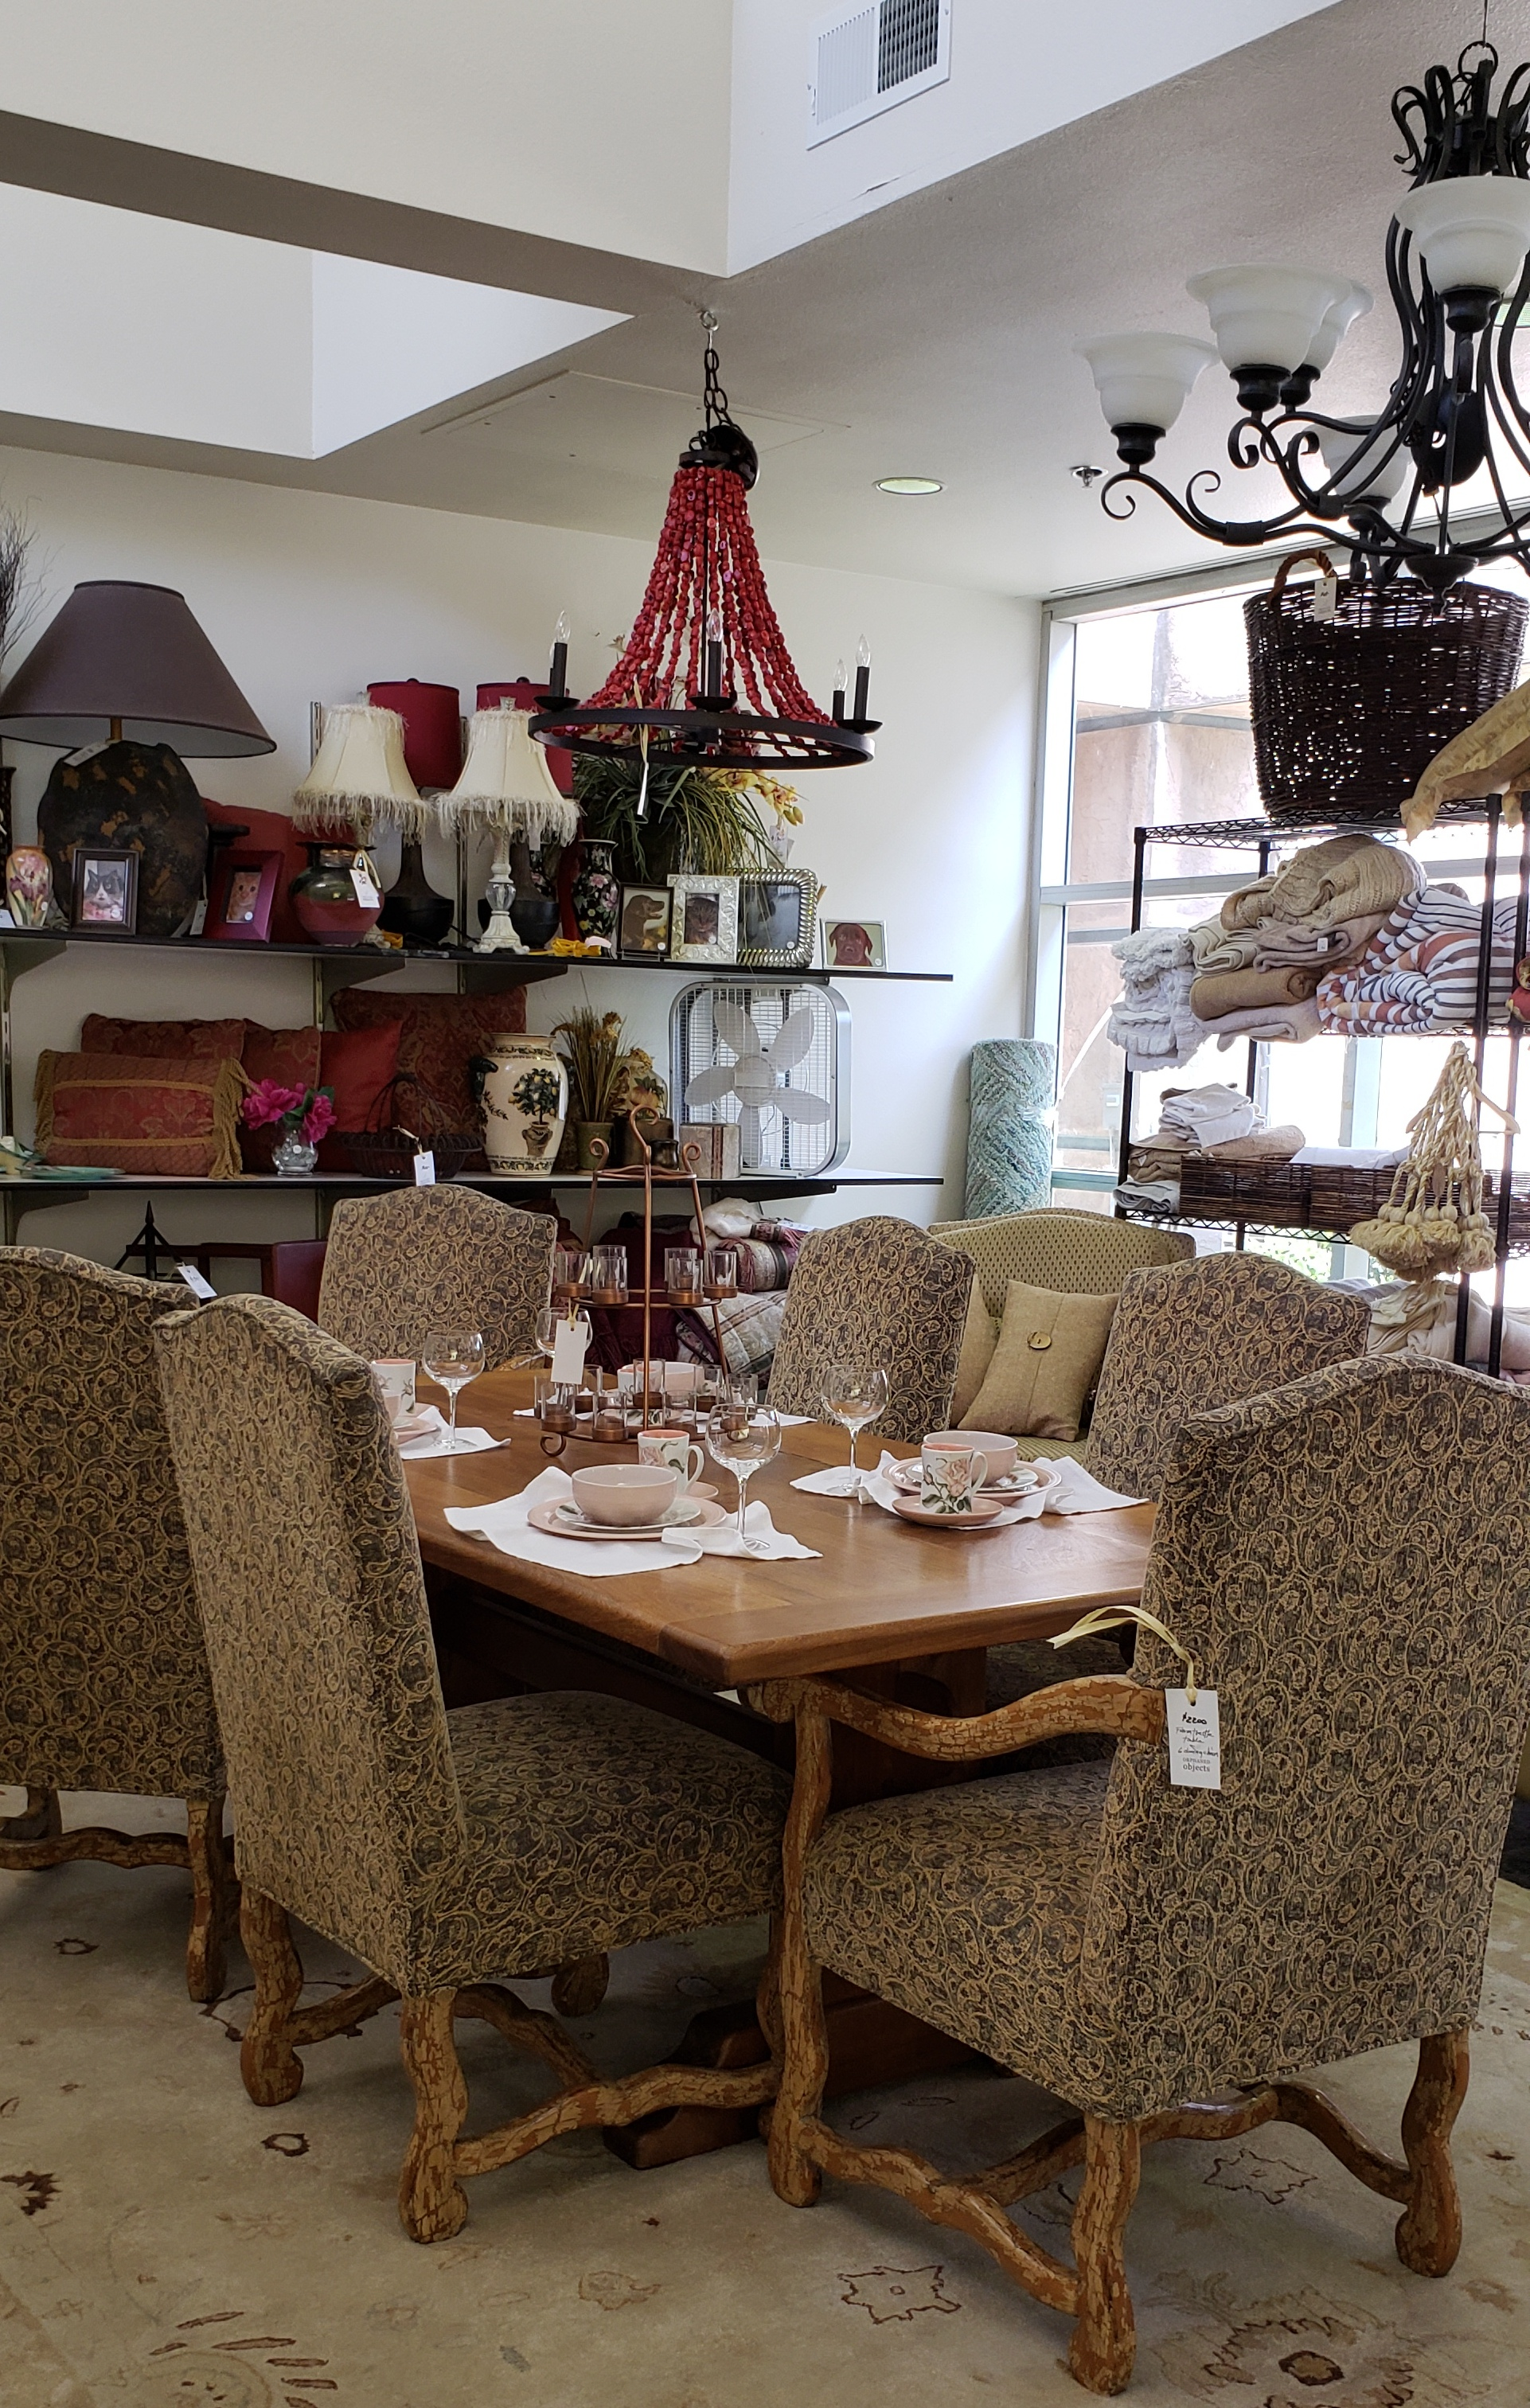 You may find....dining tables and lamps